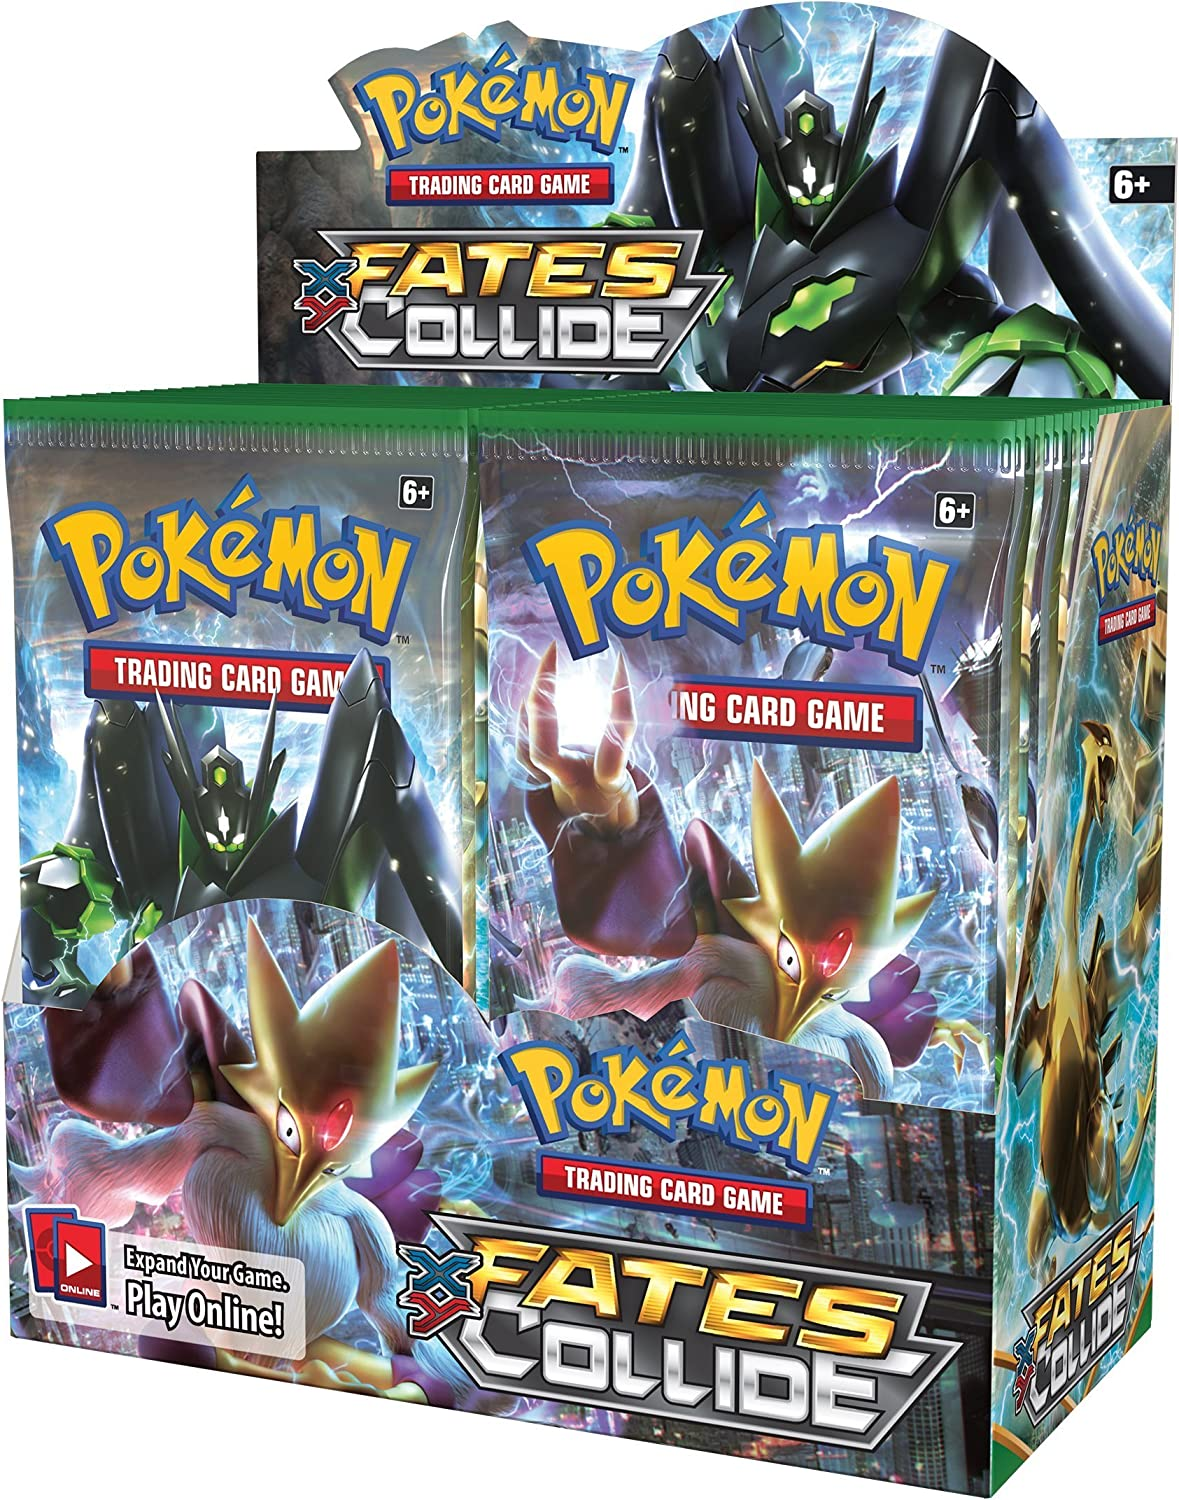 1 BOOSTER PACK! Pokemon XY Fates Collide Booster New Sealed TCG Card Game